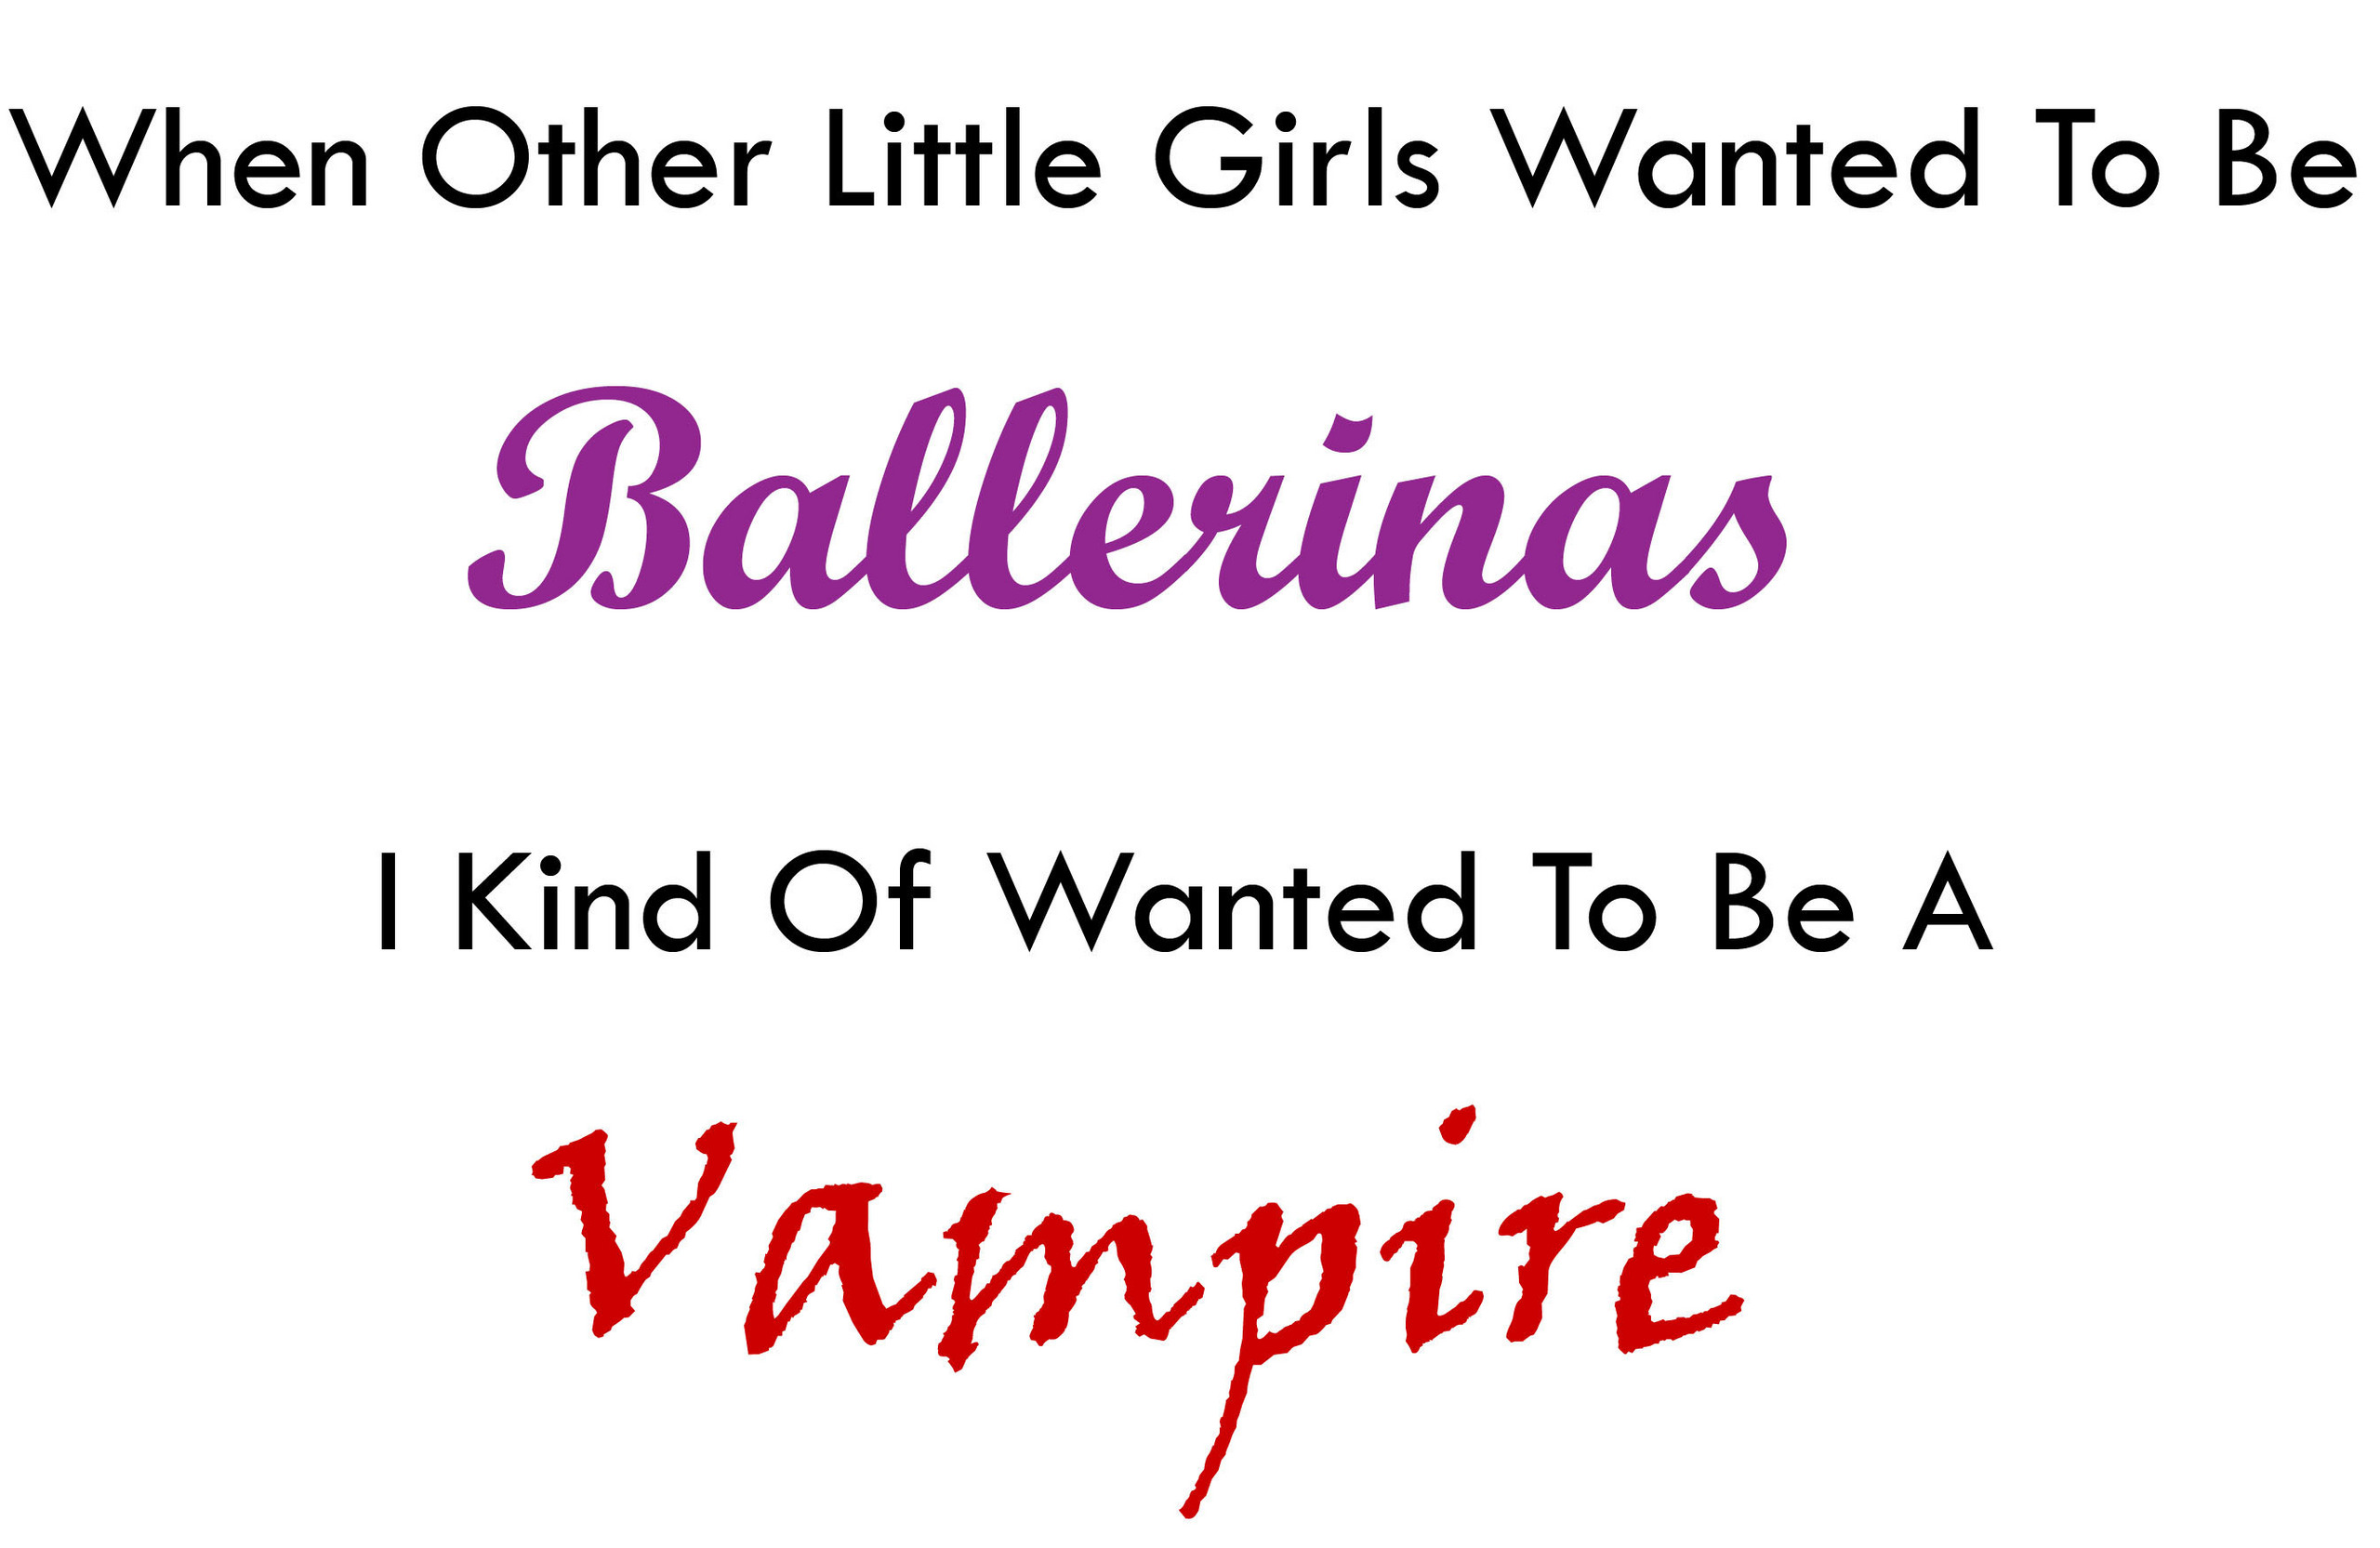 Secret Love Quotes For Him Tumblr : Ballerina Vs Vampire - Quotes Fan Art (4295330) - Fanpop